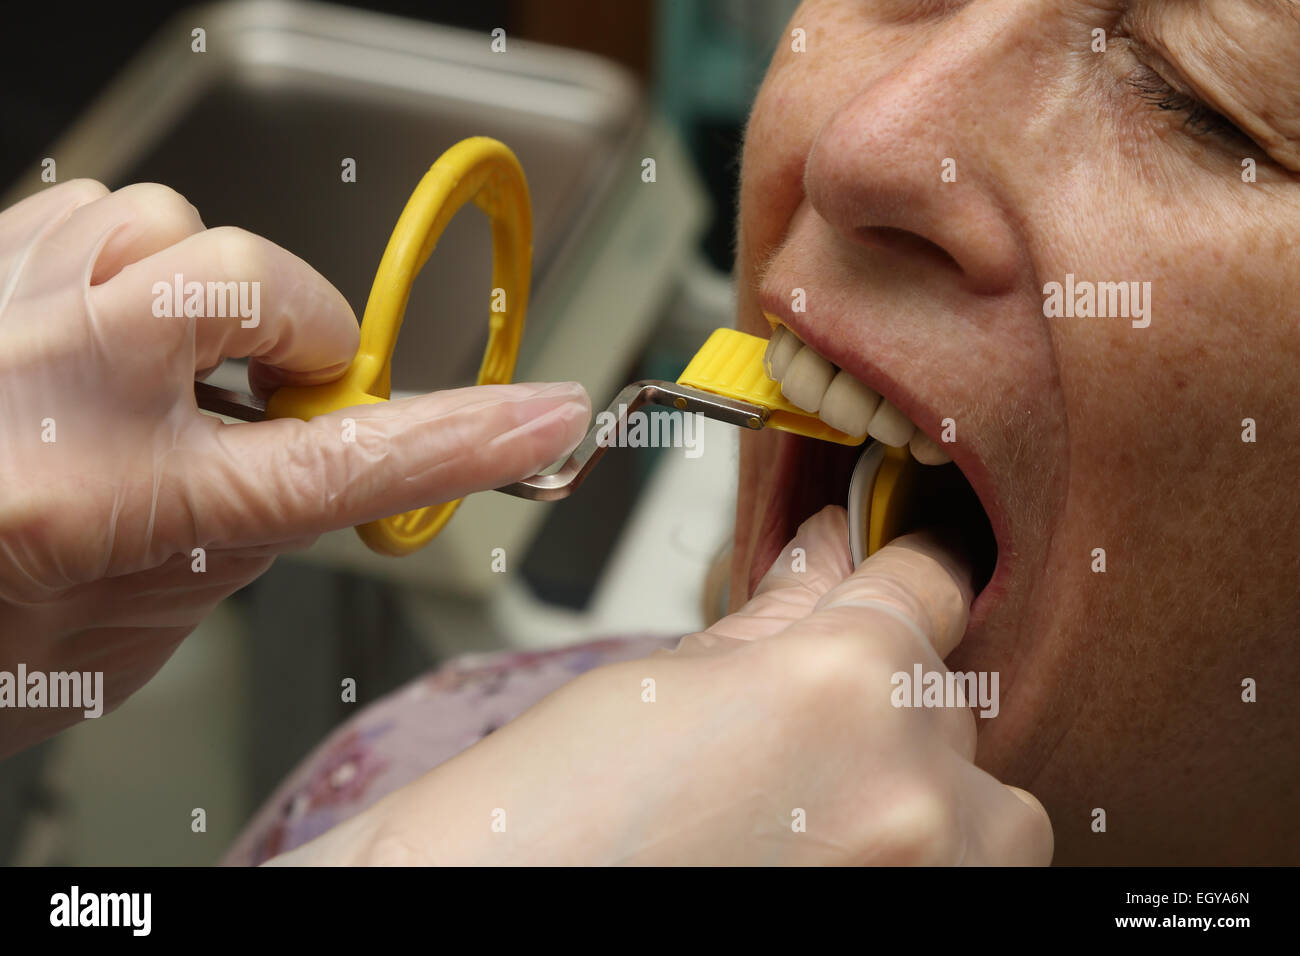 Woman at dentist having x-ray - model released - Stock Image